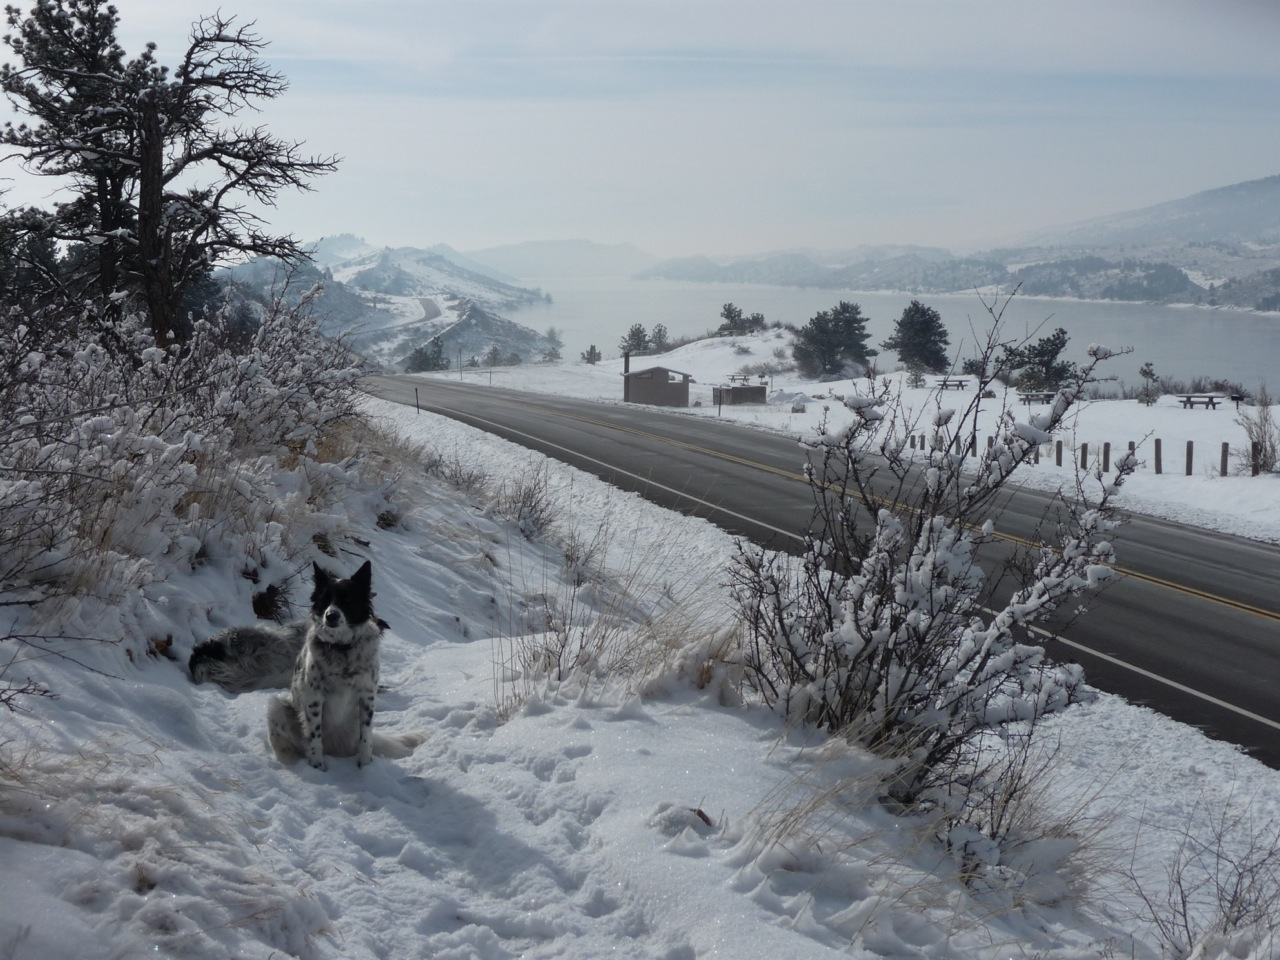 Dr. Maguire's collies Ella and Murphy enjoying a fresh snow day in Colorado